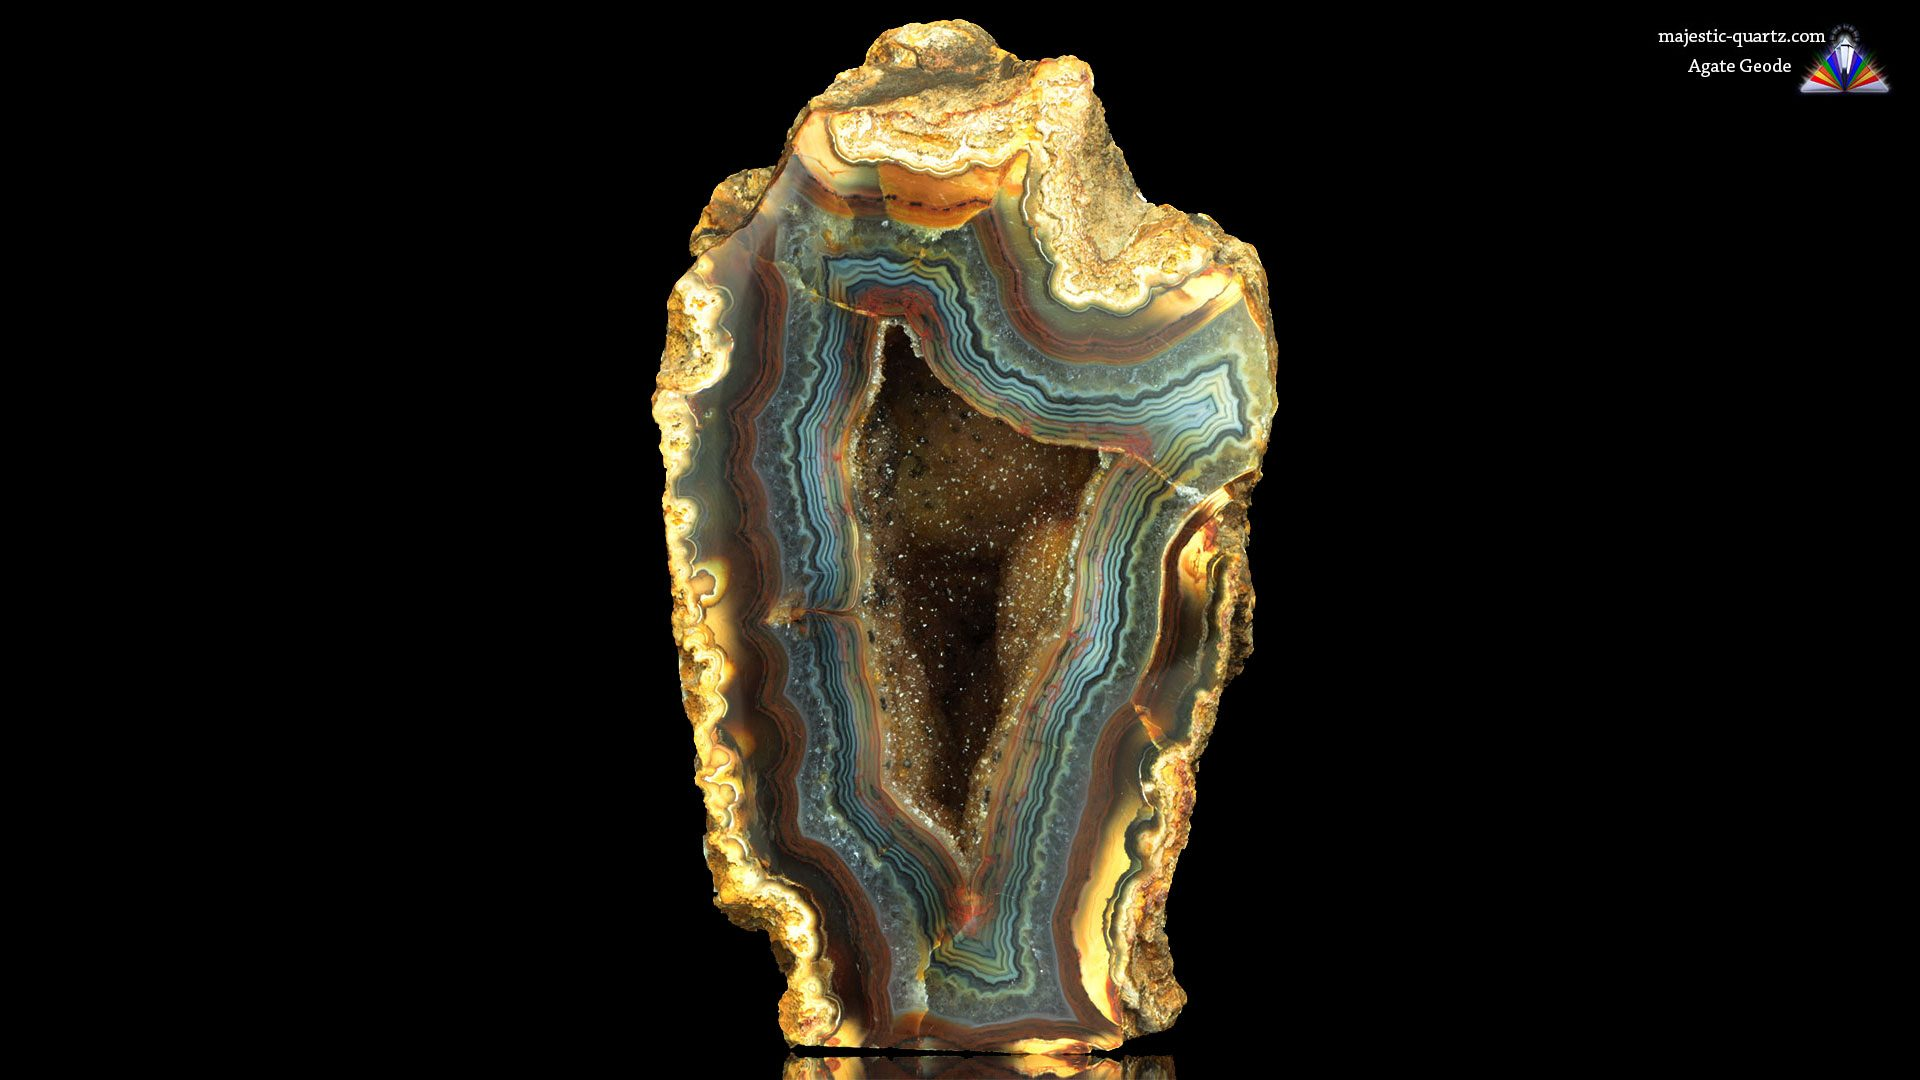 Agate Geode - Photograph by Anthony Bradford